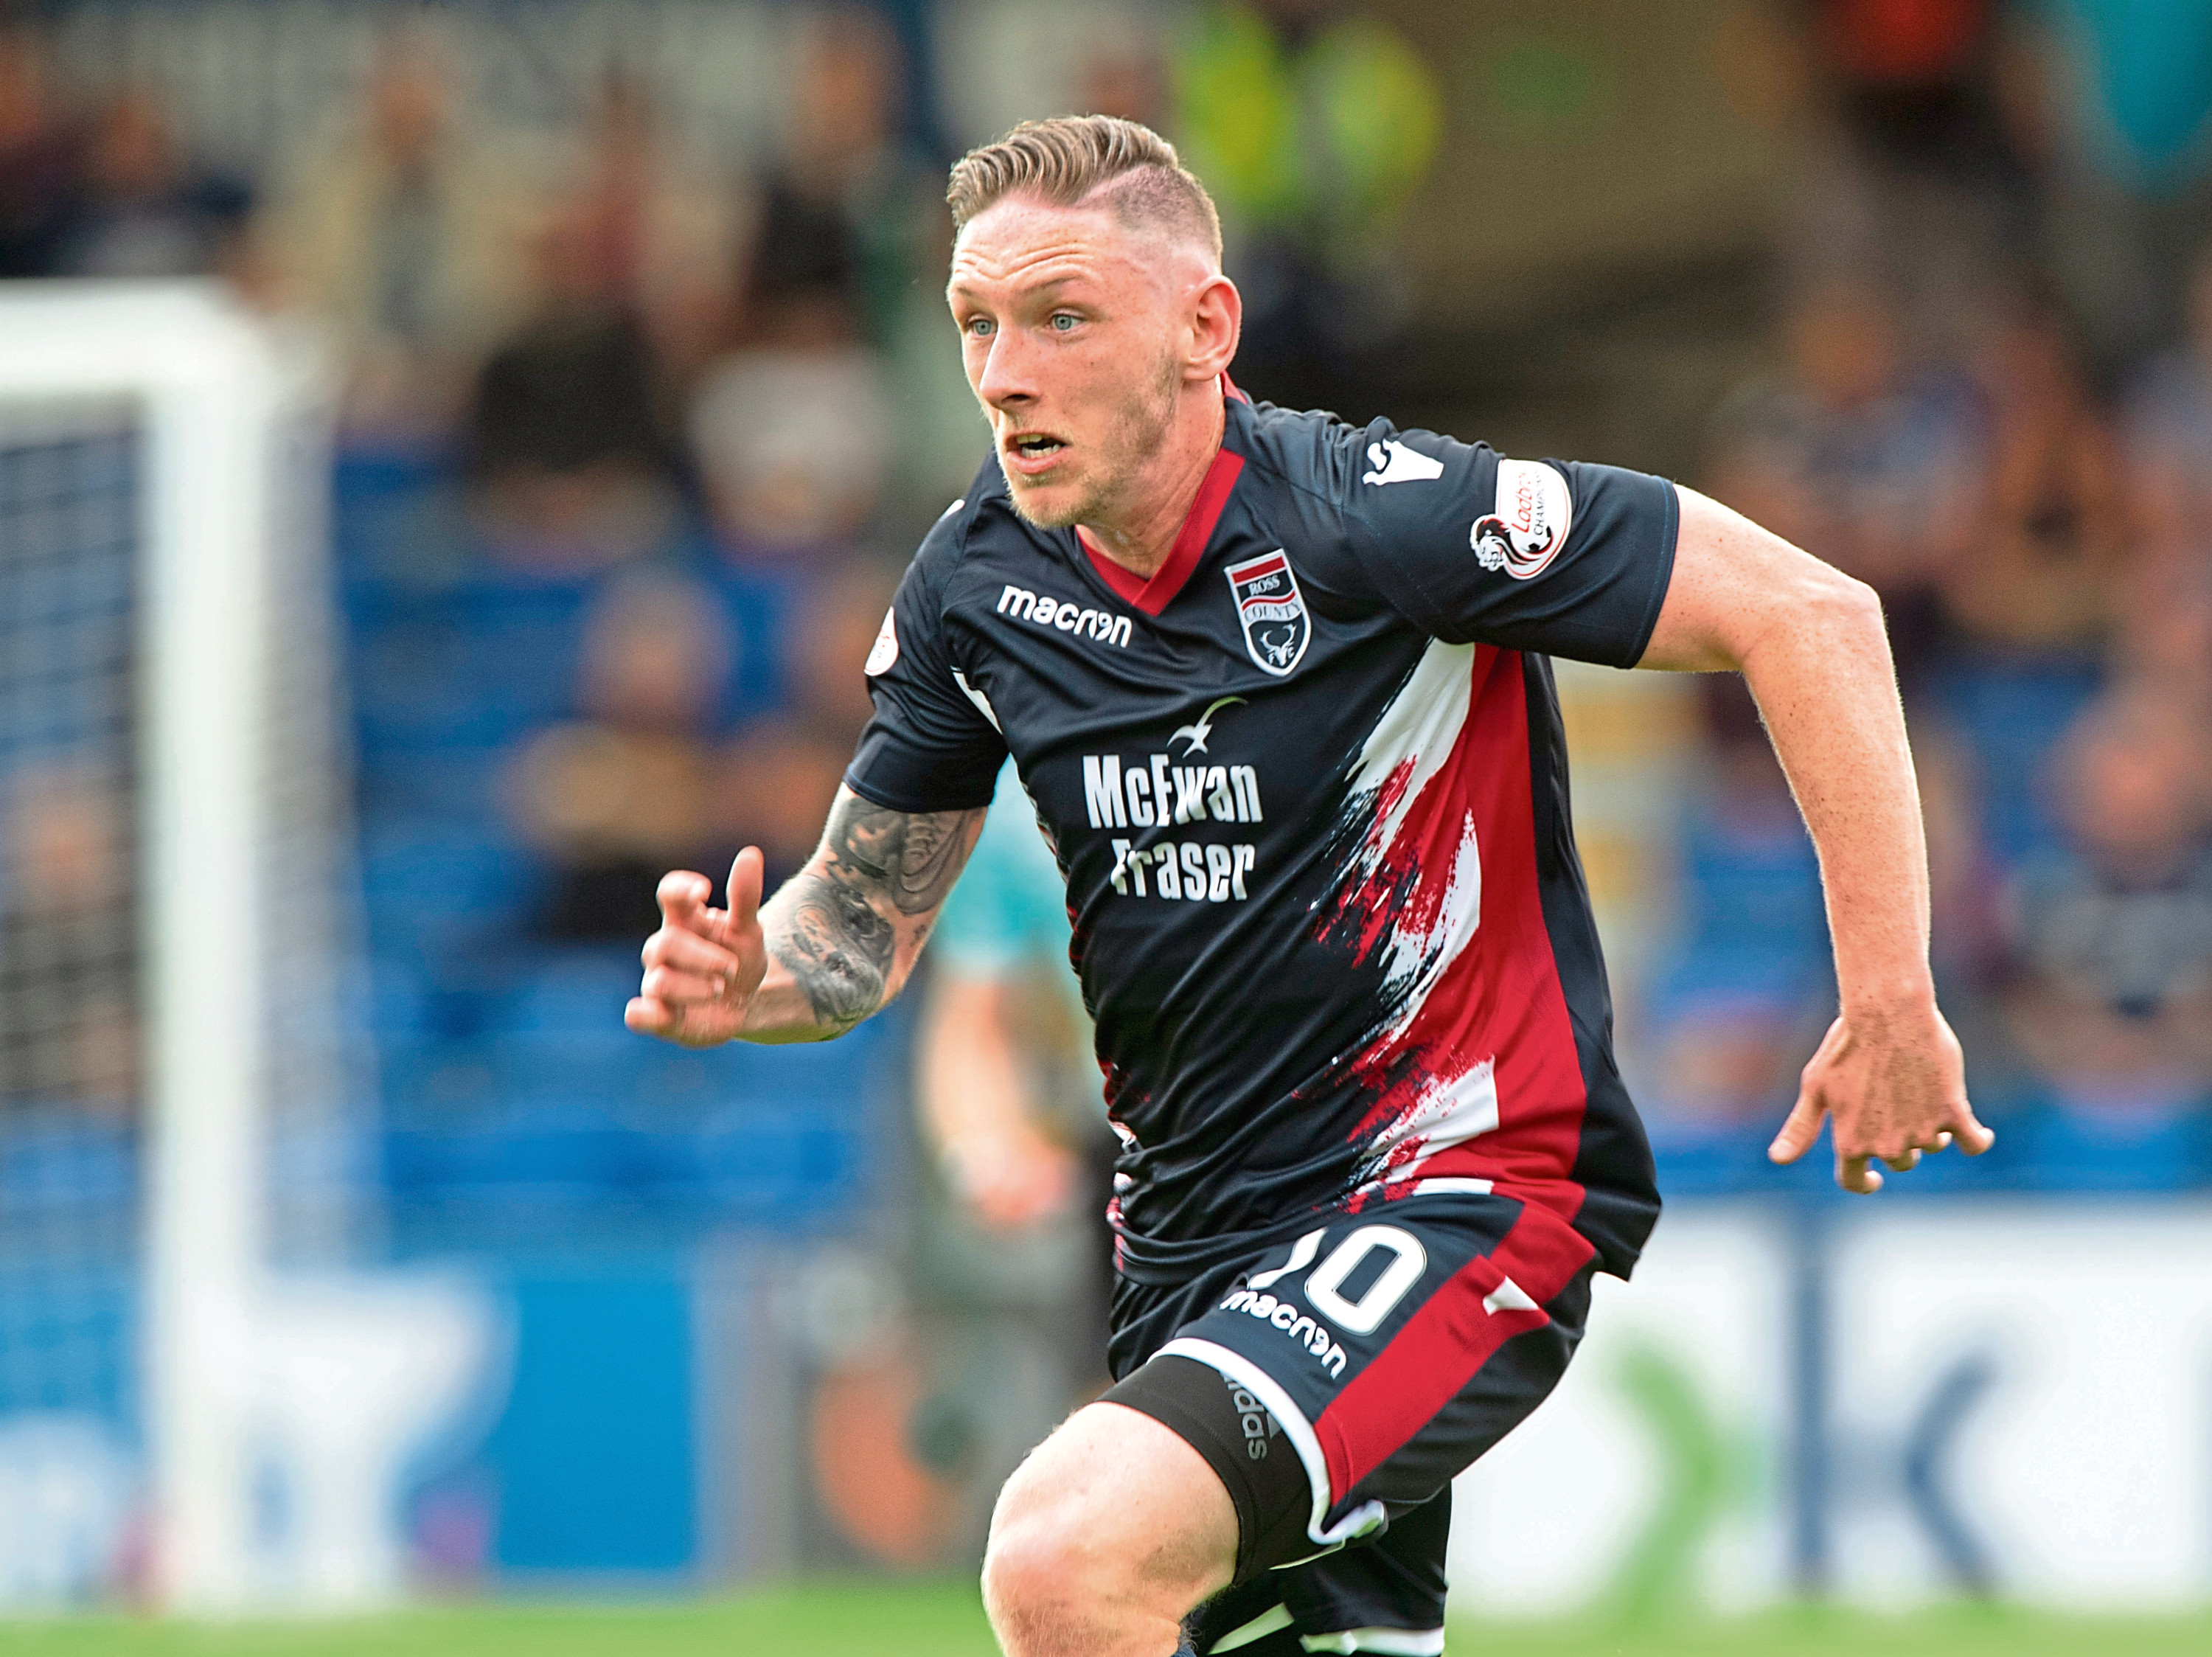 Declan McManus in action for Ross County.